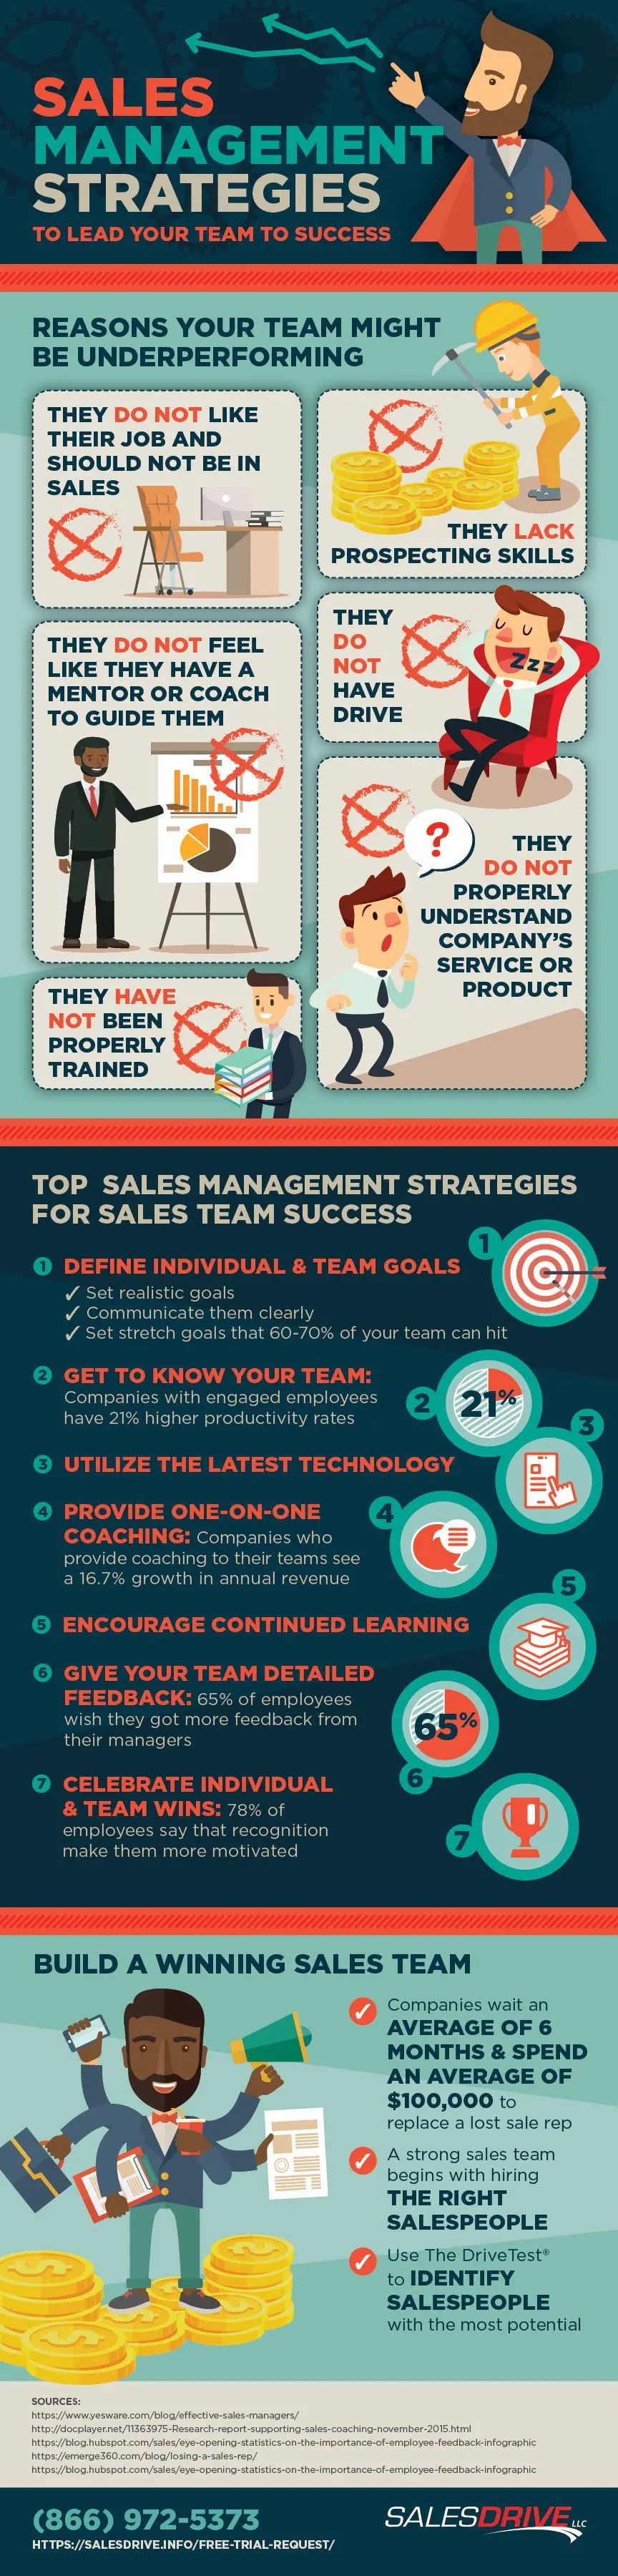 expert-sales-management-strategies